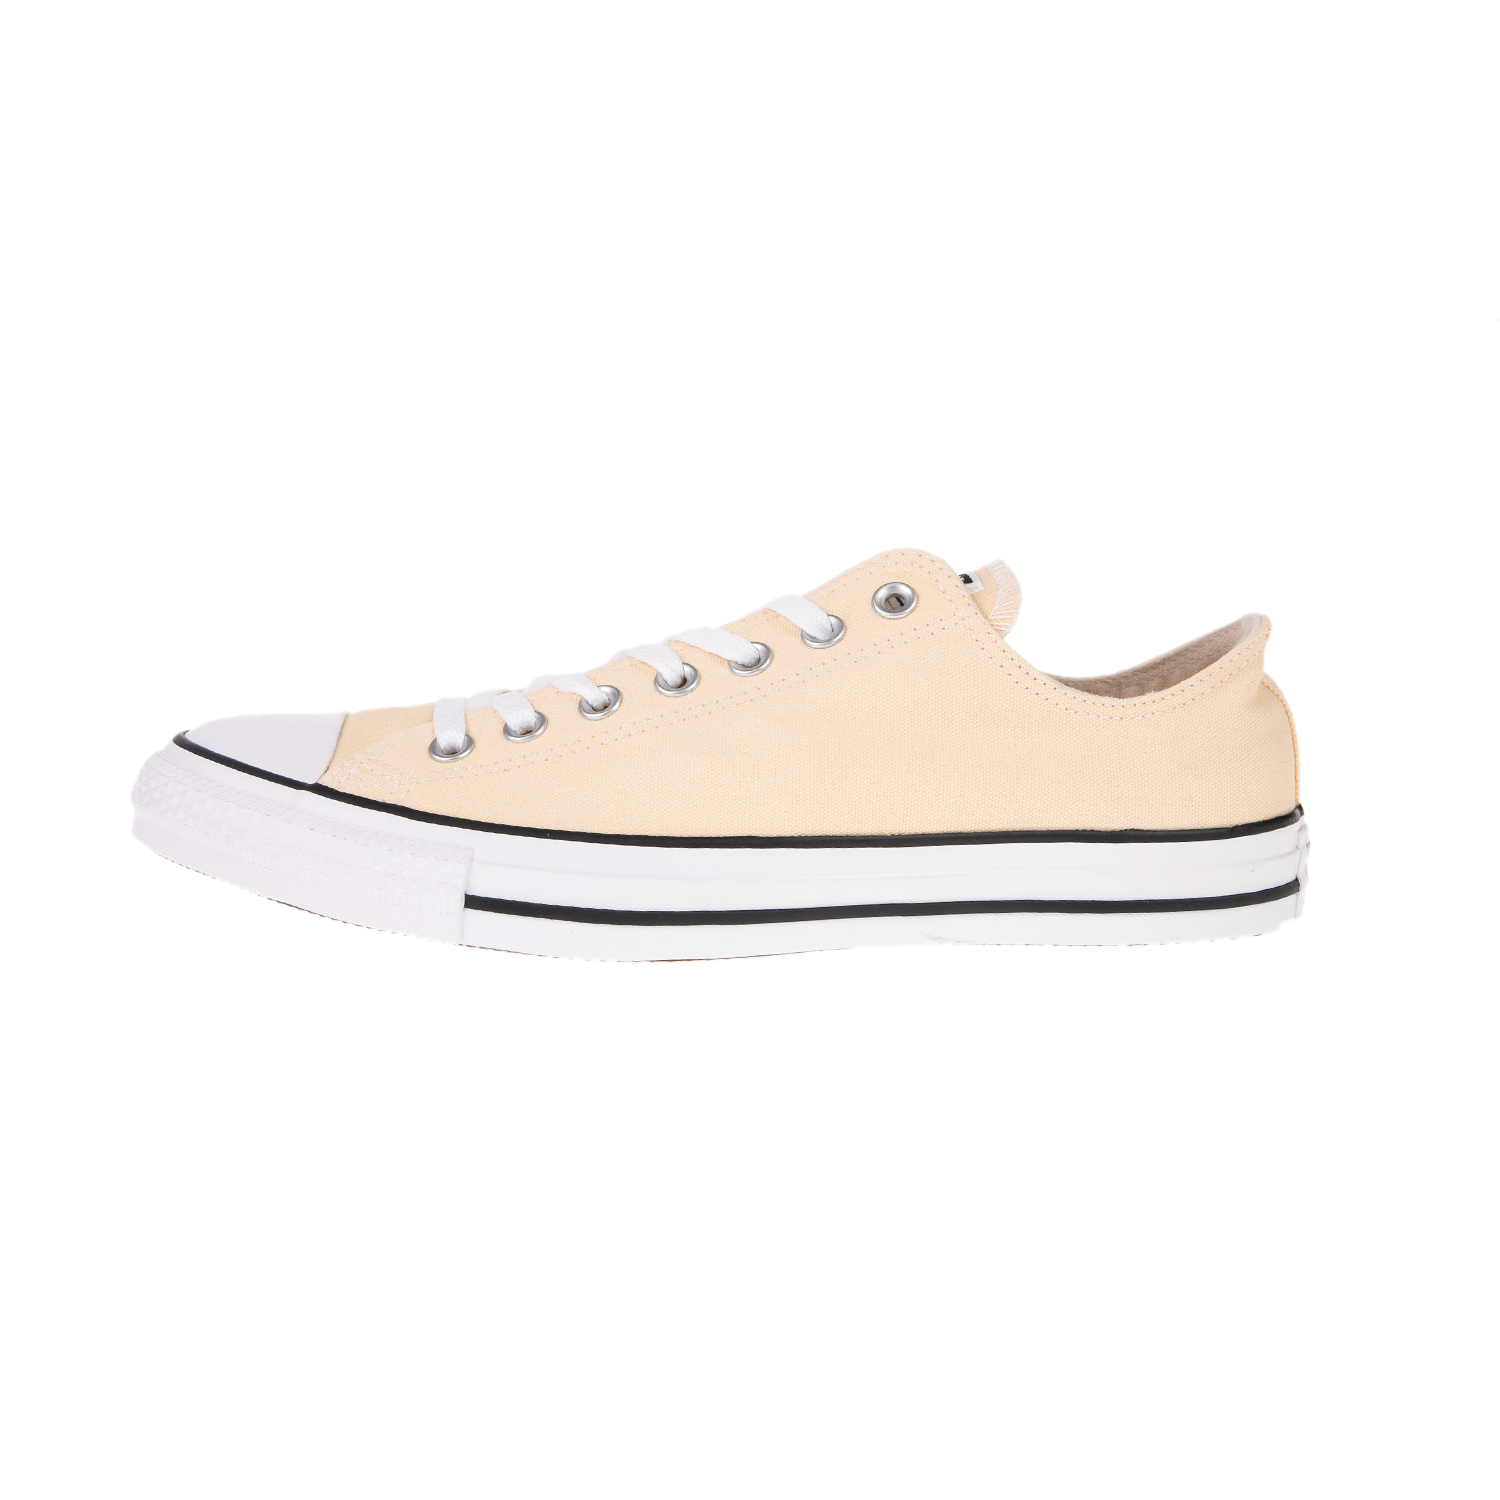 CONVERSE – Unisex sneakers CONVERSE Chuck Taylor All Star κίτρινο